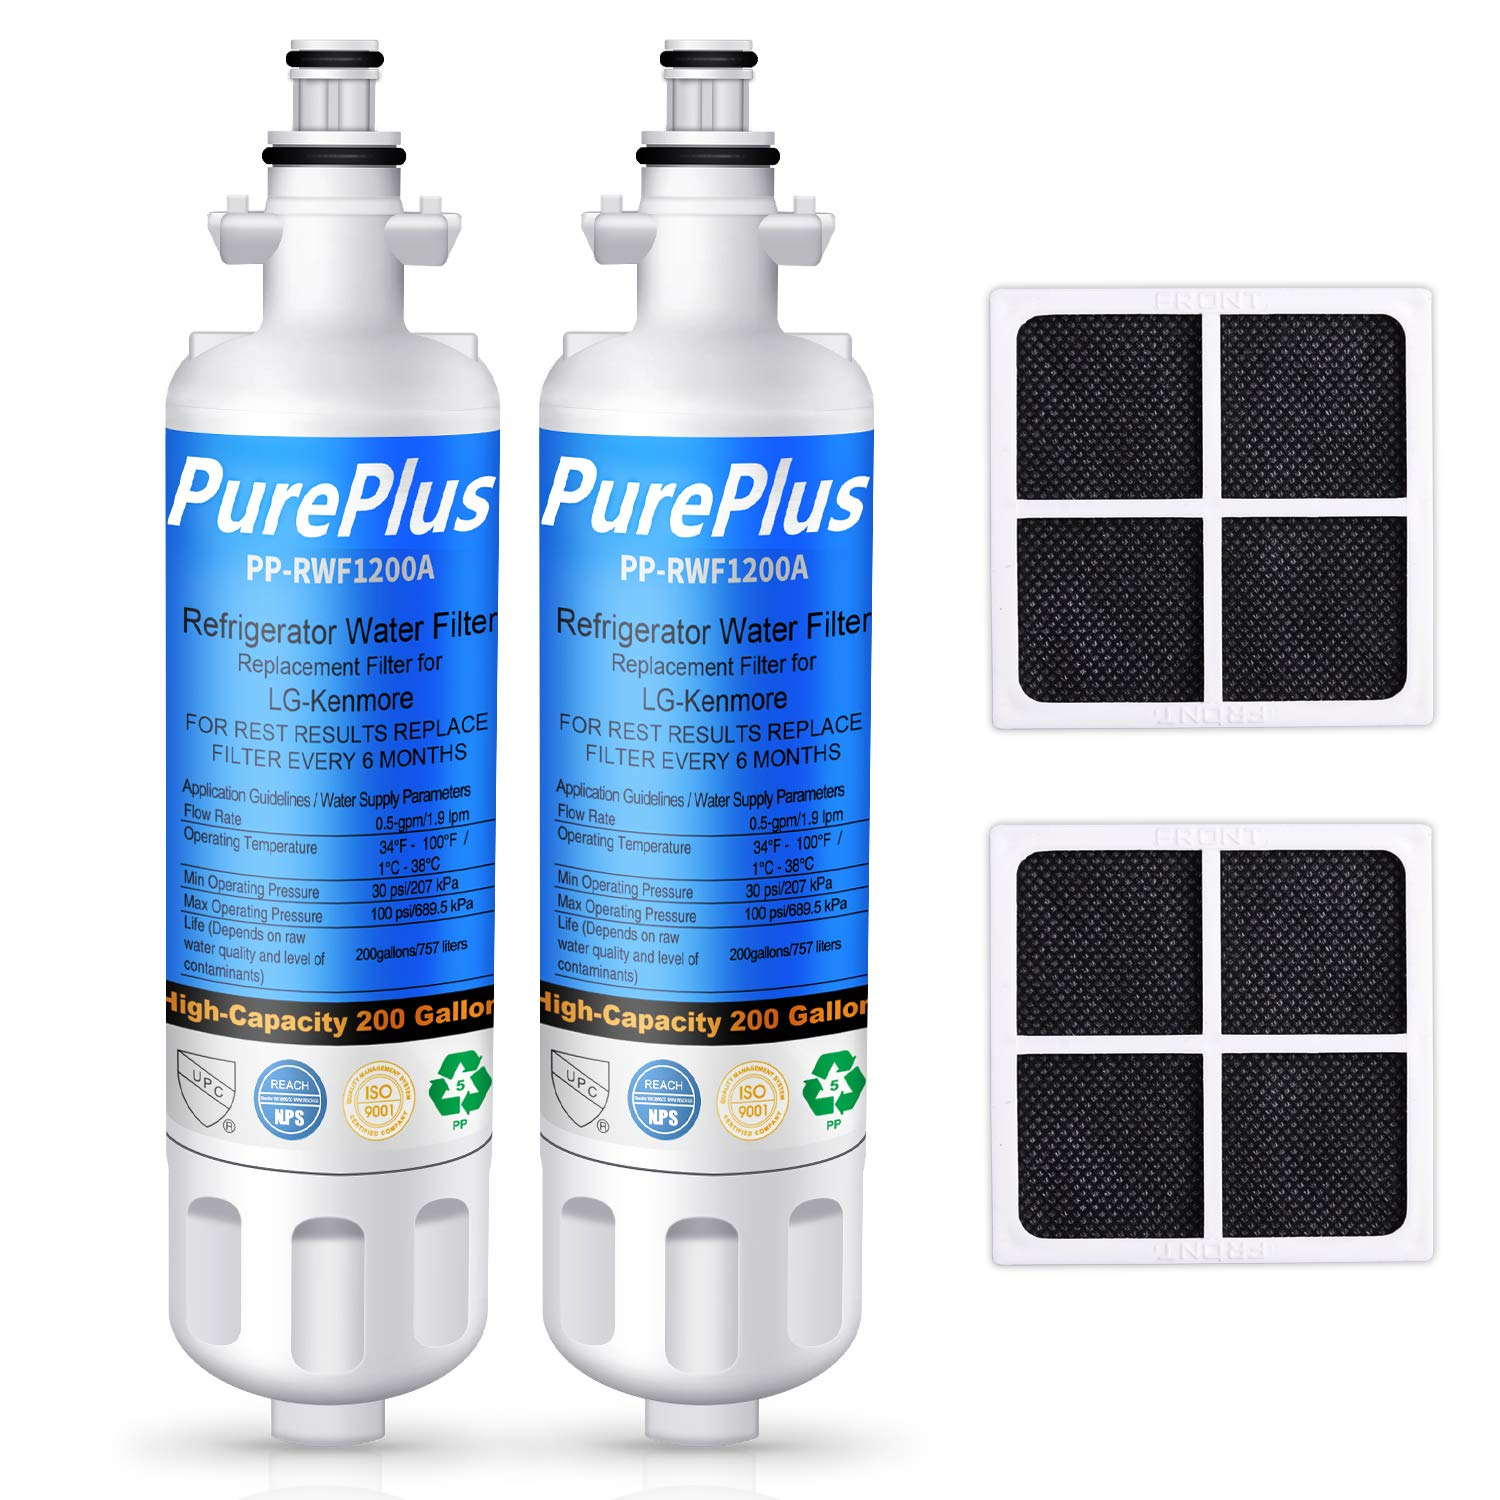 PUREPLUS 469690 Refrigerator Water Filter, Replacement for LG LT700P, ADQ36006101, Kenmore 46-9690, 9690, ADQ36006102, WSL-3, LFXS30766S, LFXC24726D, LFXS29766S and LG LT120F Air Filter Combo, 2-Pack